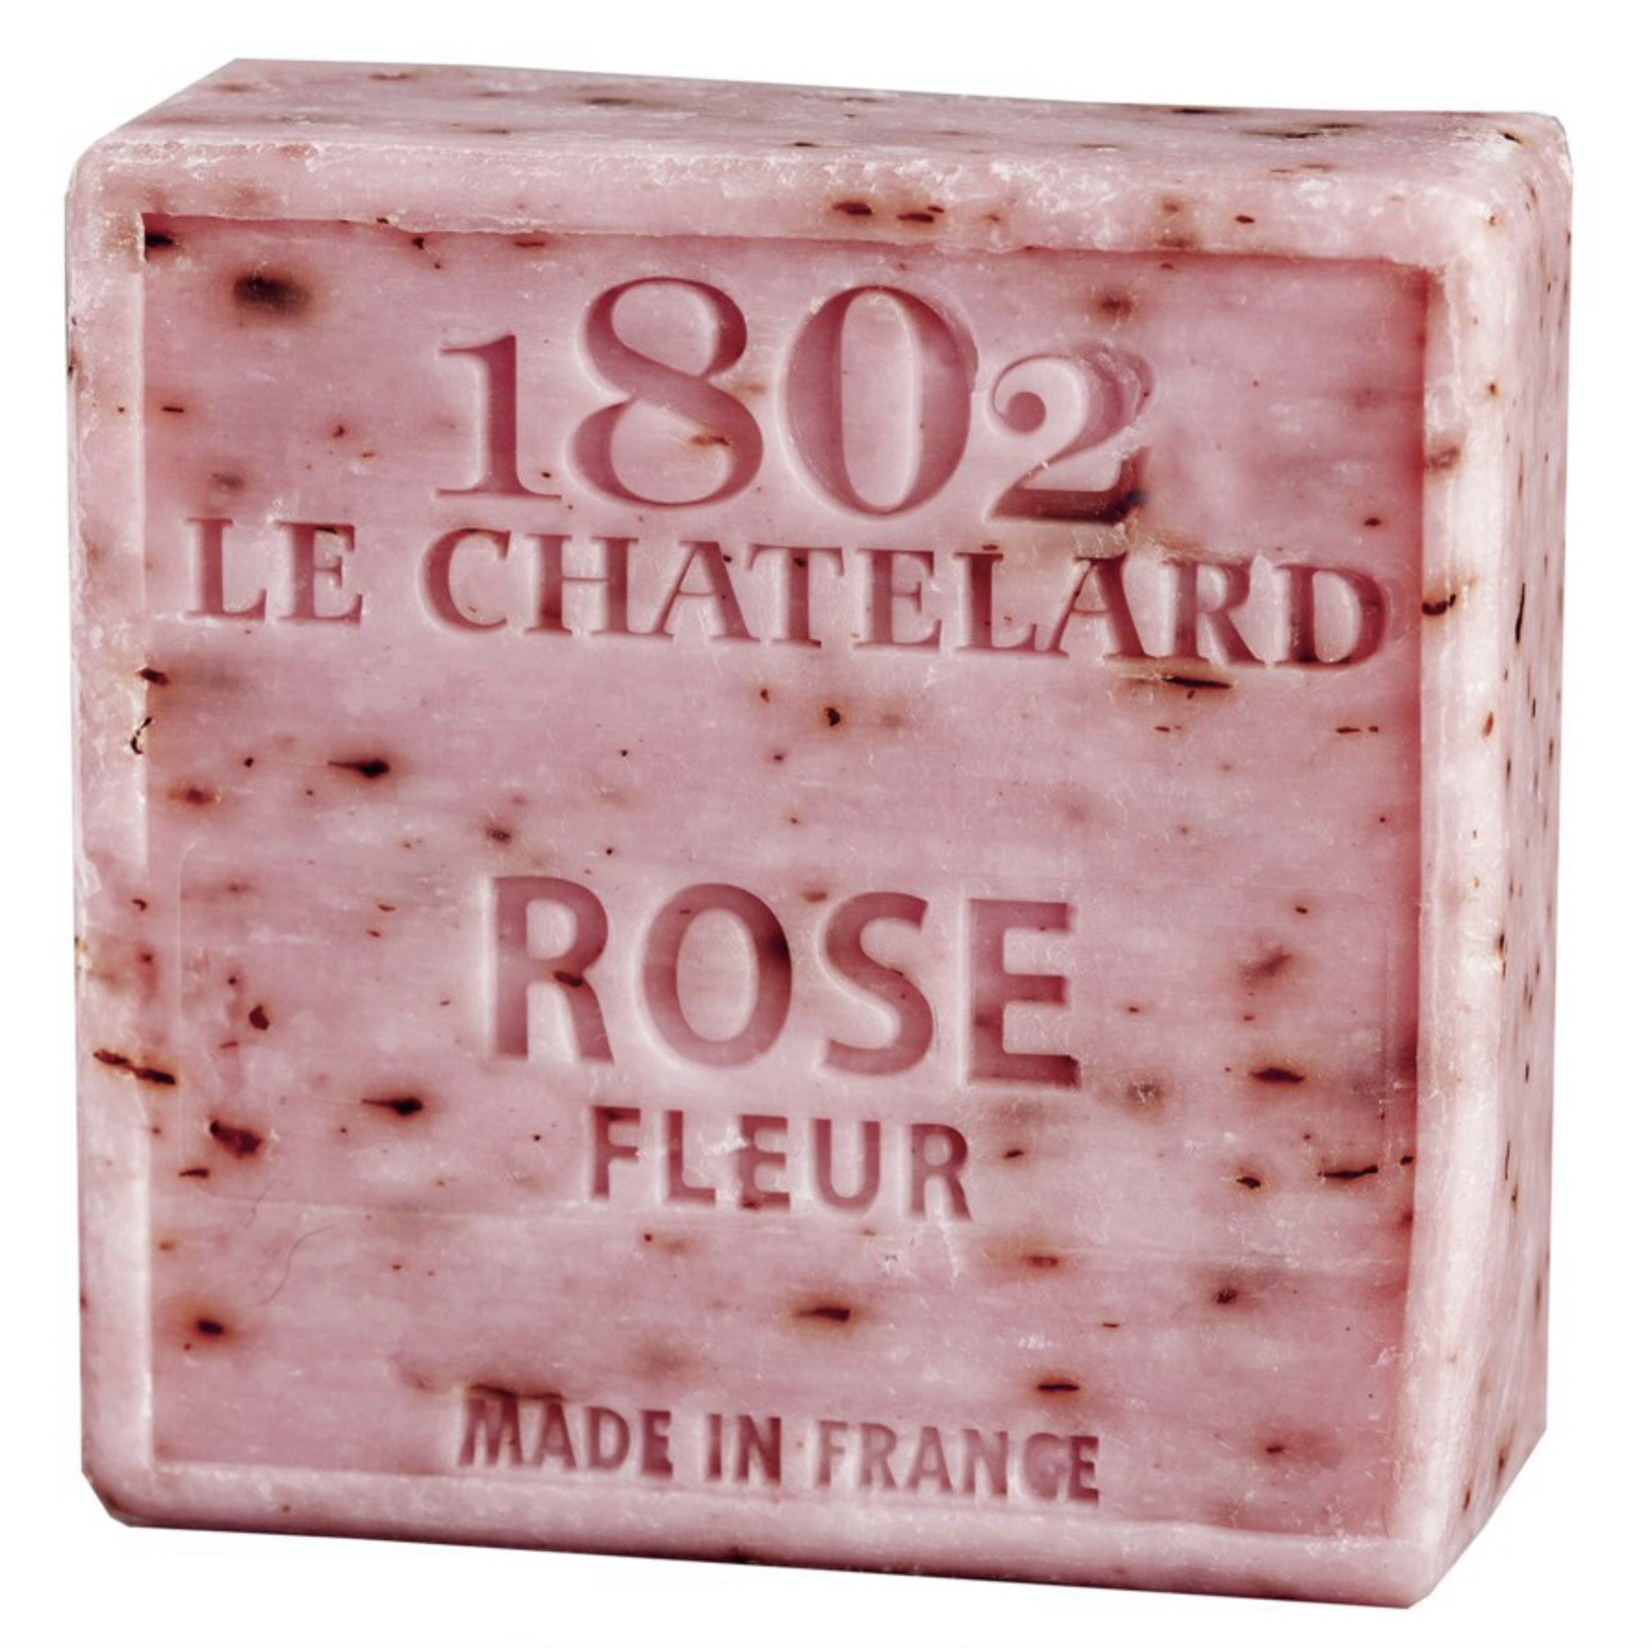 Le Chatelard 1802 - Made in France (Square)